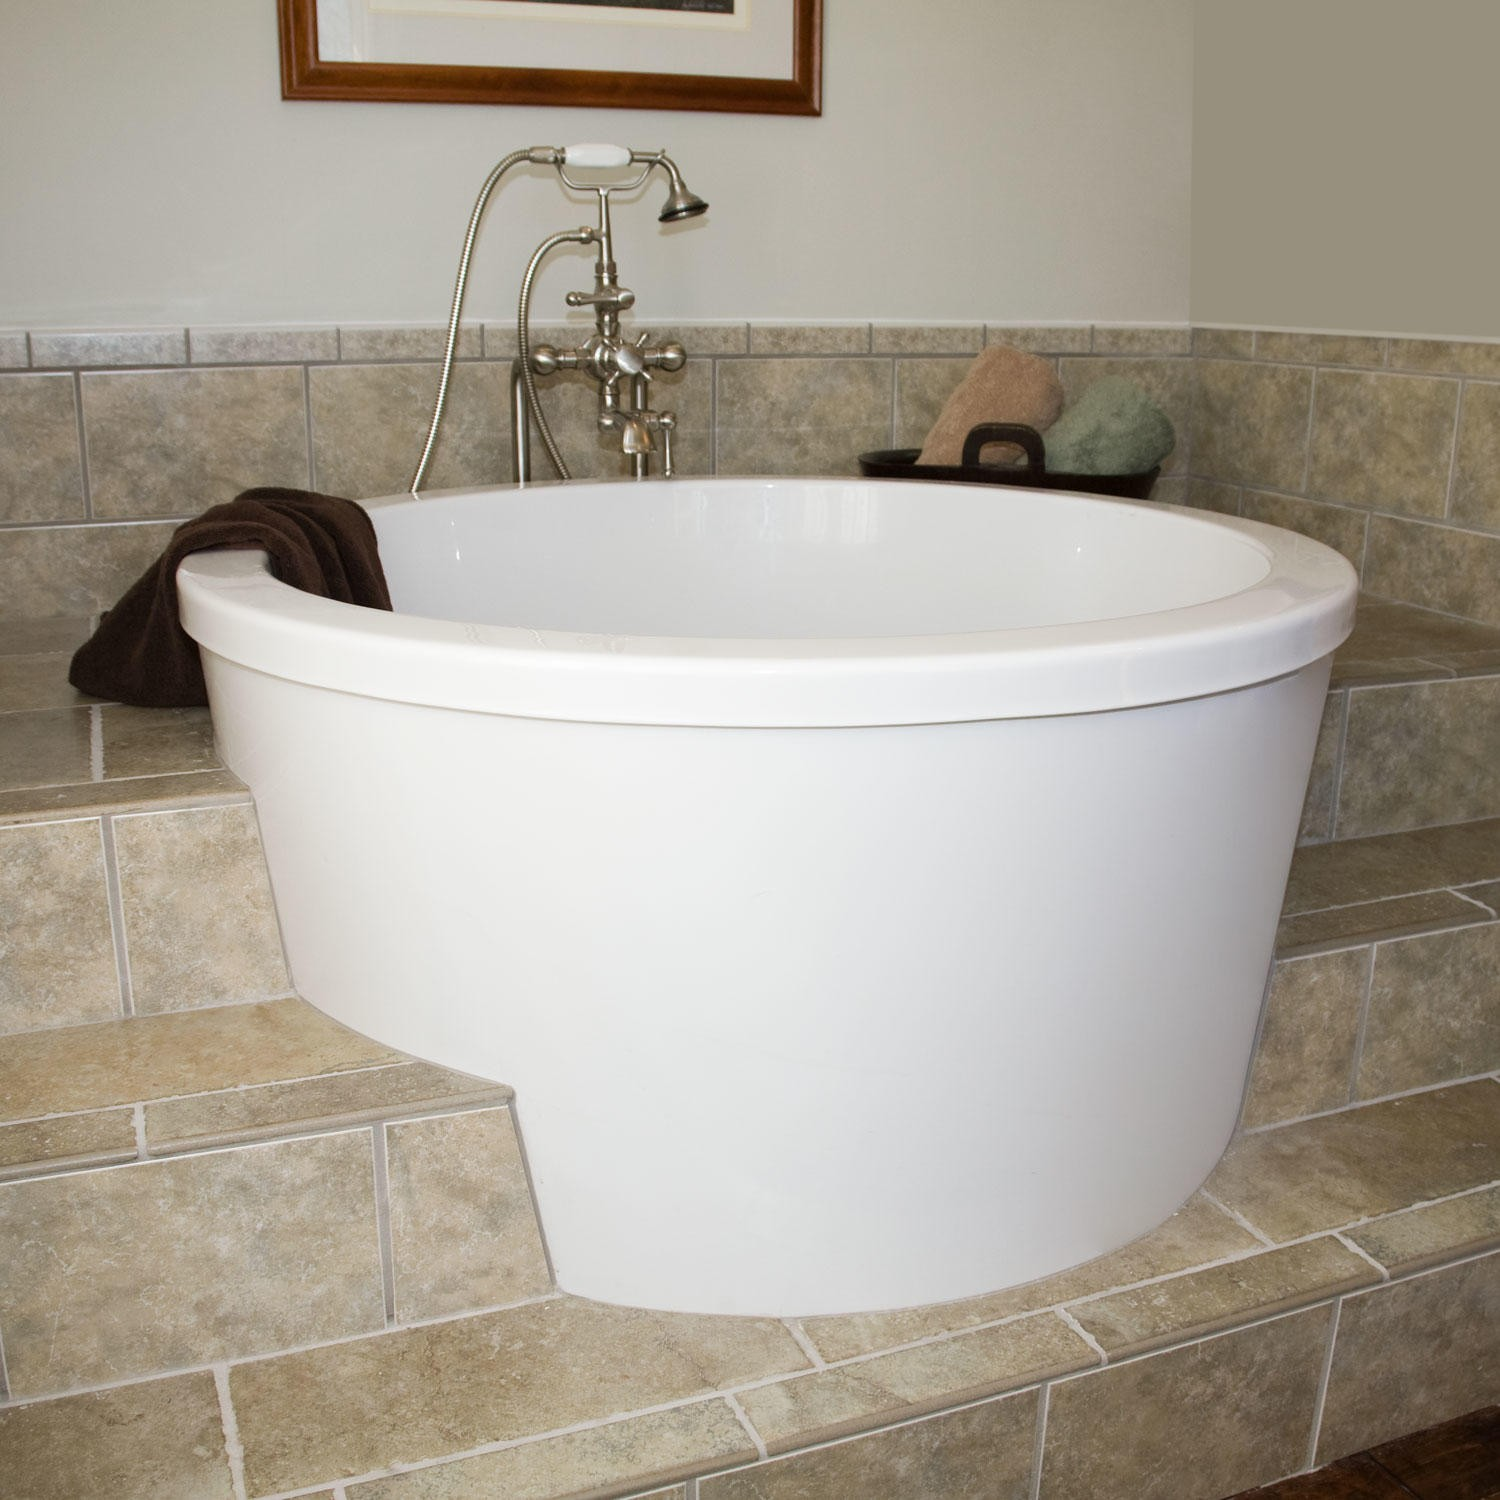 Small soaker tub ideas square japanese soaking tub small room decorating ideas for Small japanese soaking tubs small bathrooms